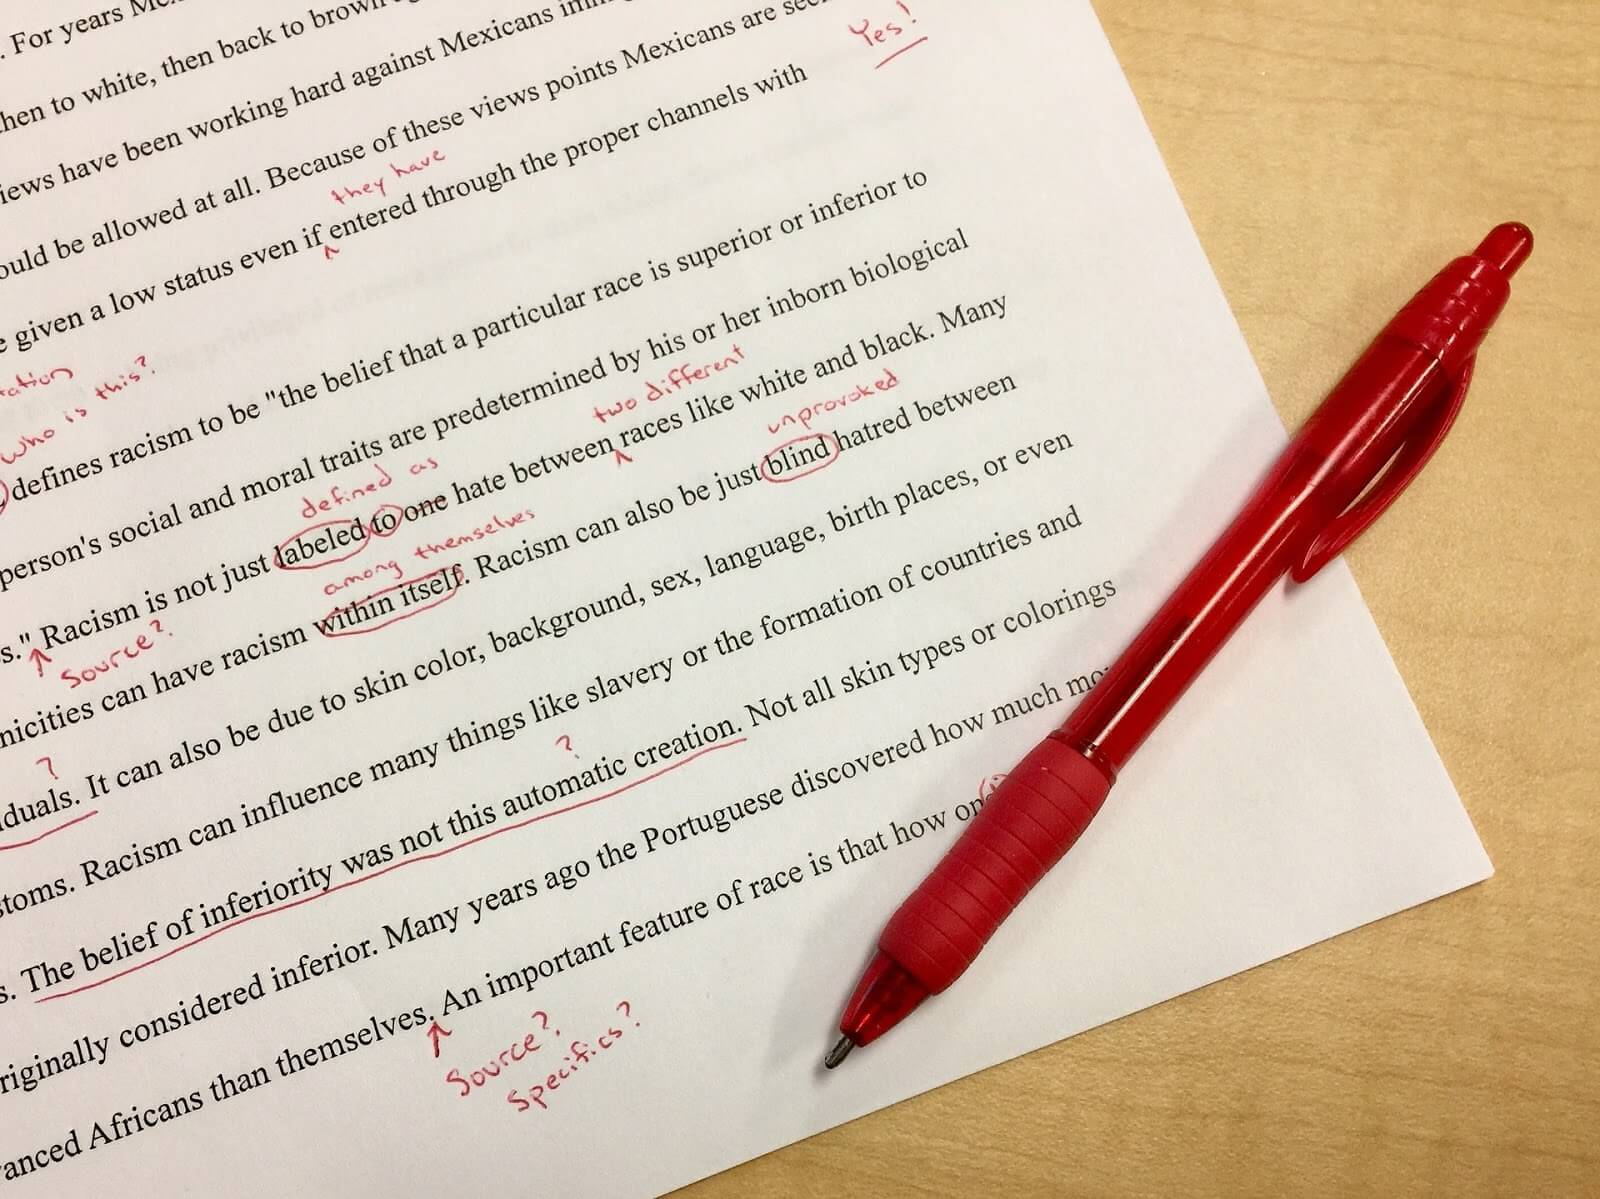 Essay marked with red pen